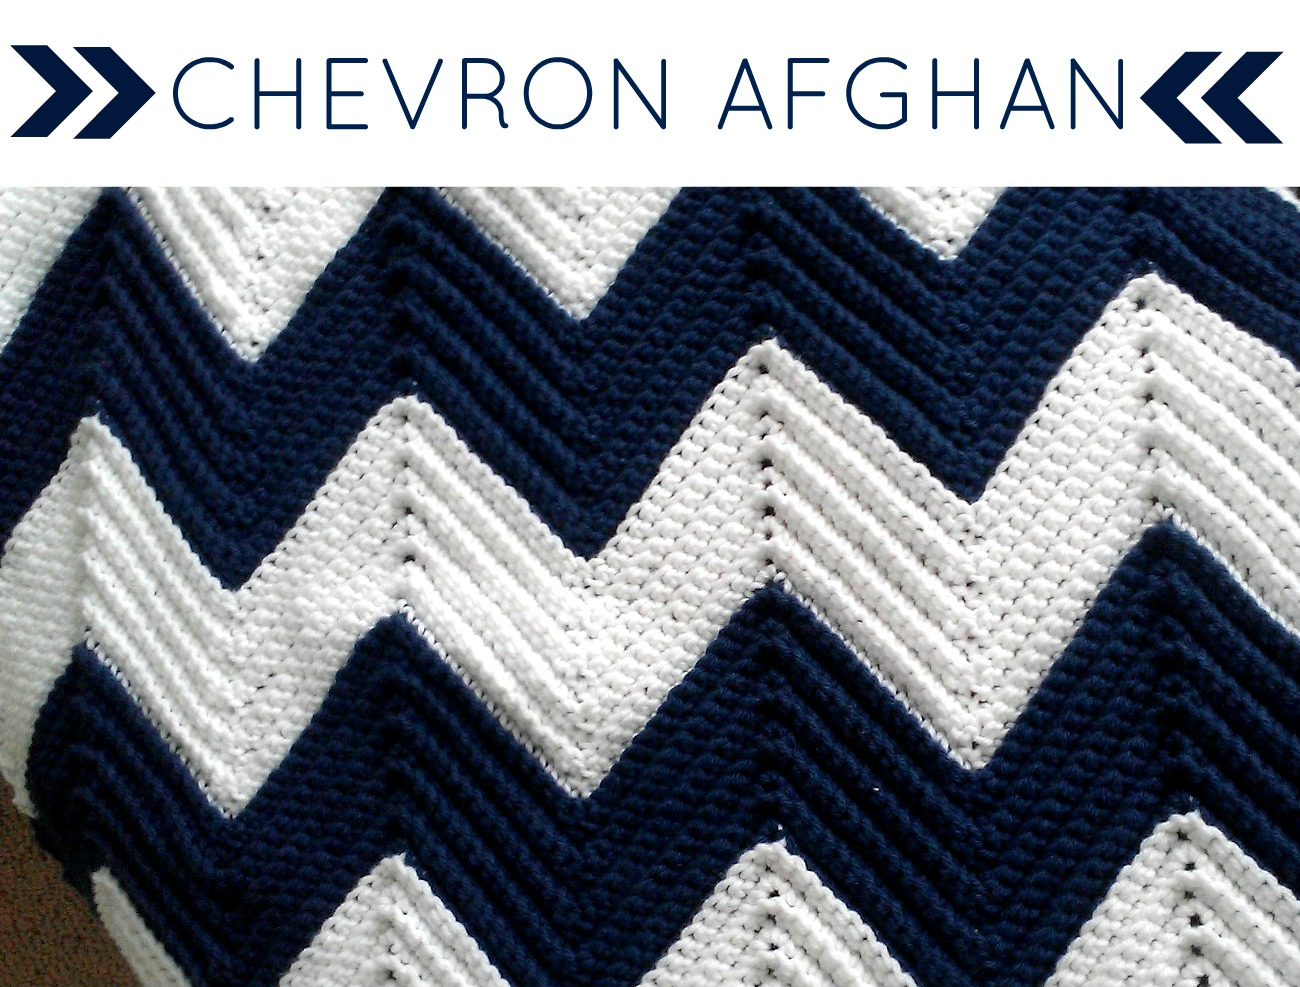 Chevron Knitting Pattern Afghan : All Things Bright and Beautiful: A Gift of Love: Chevron ...